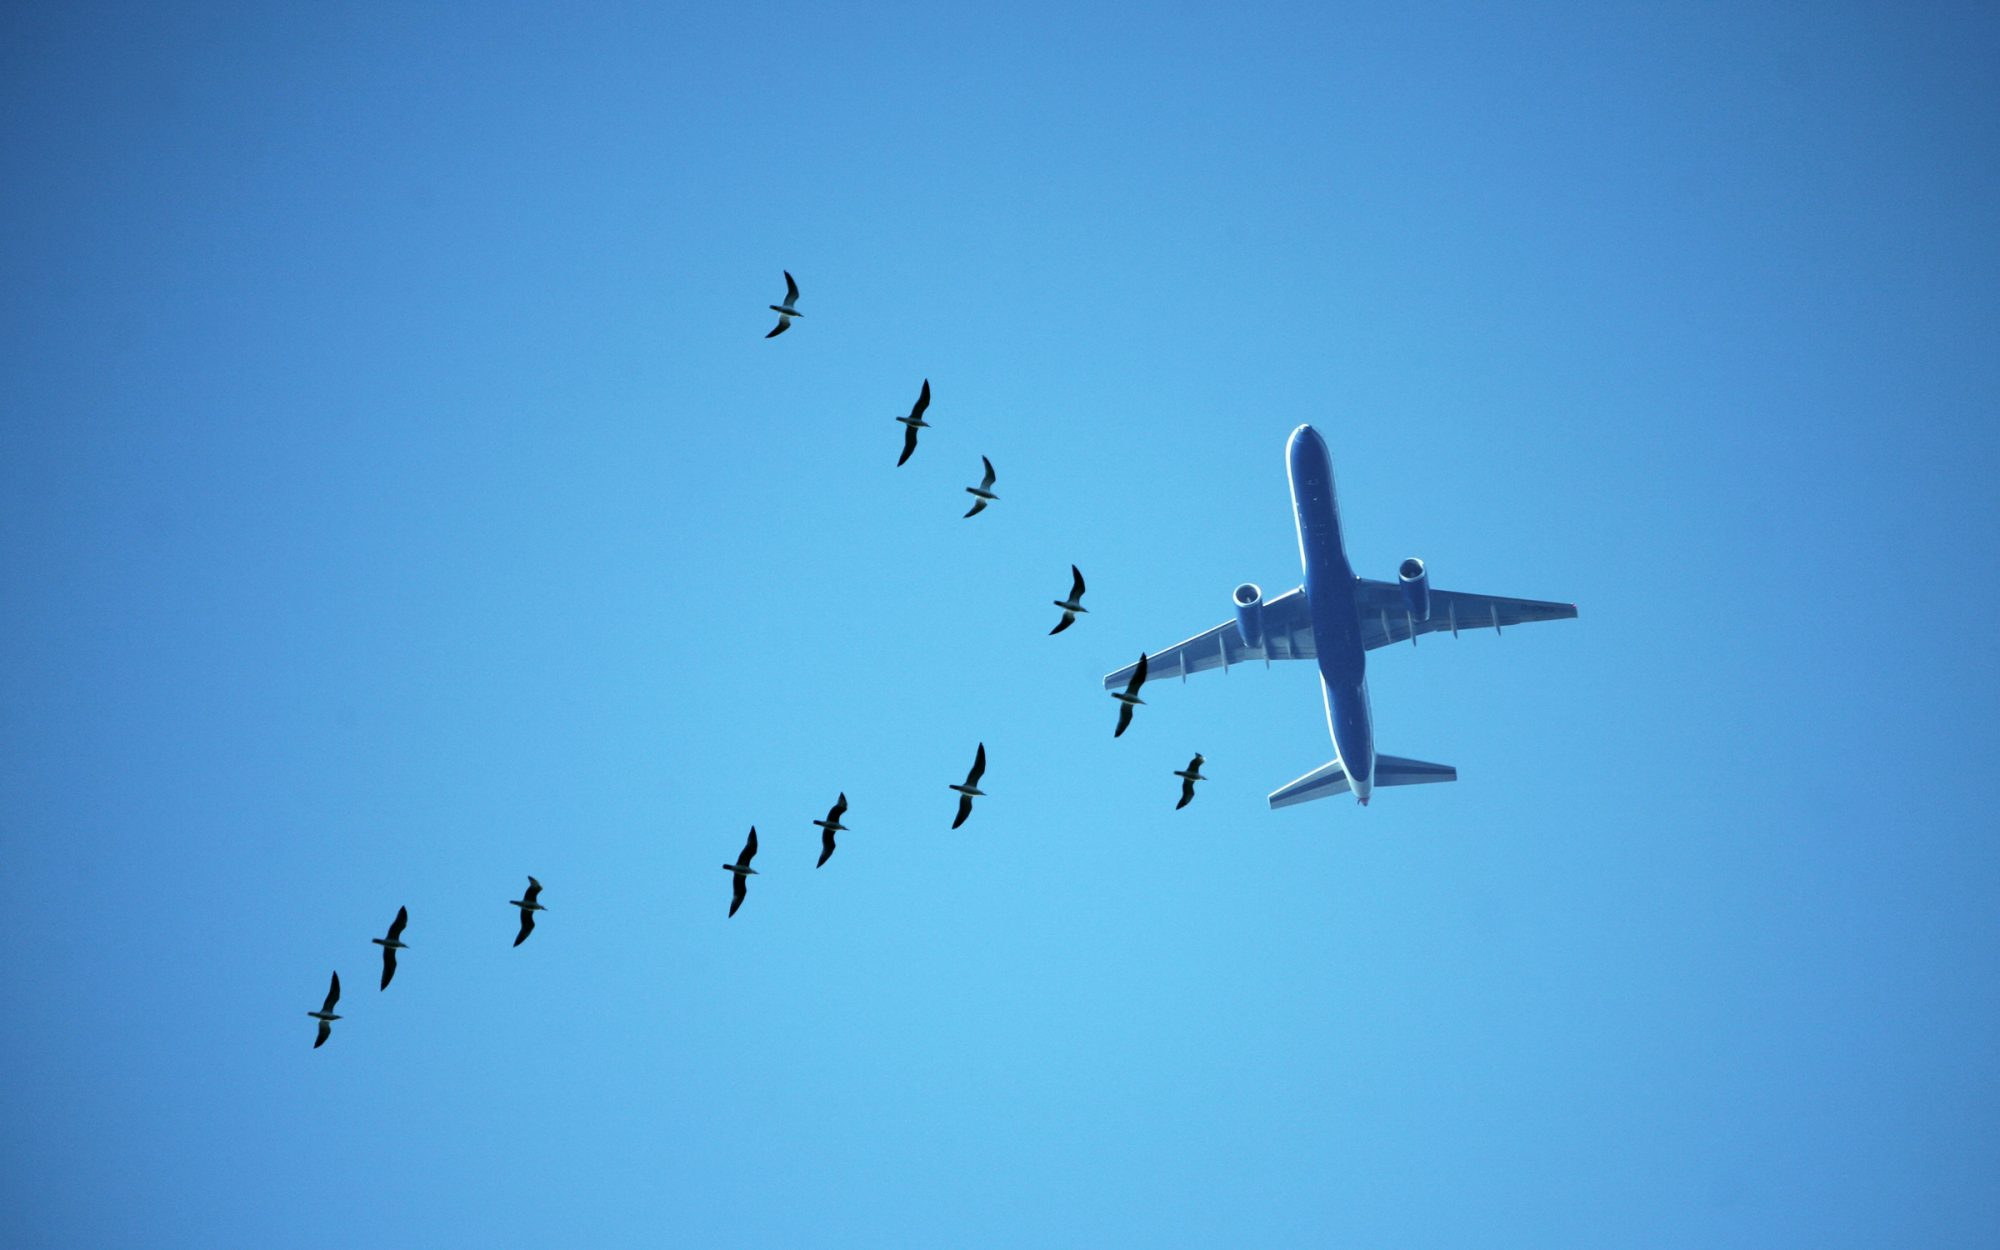 12 Steps To Getting Over Your Fear of Flying | Travel + Leisure